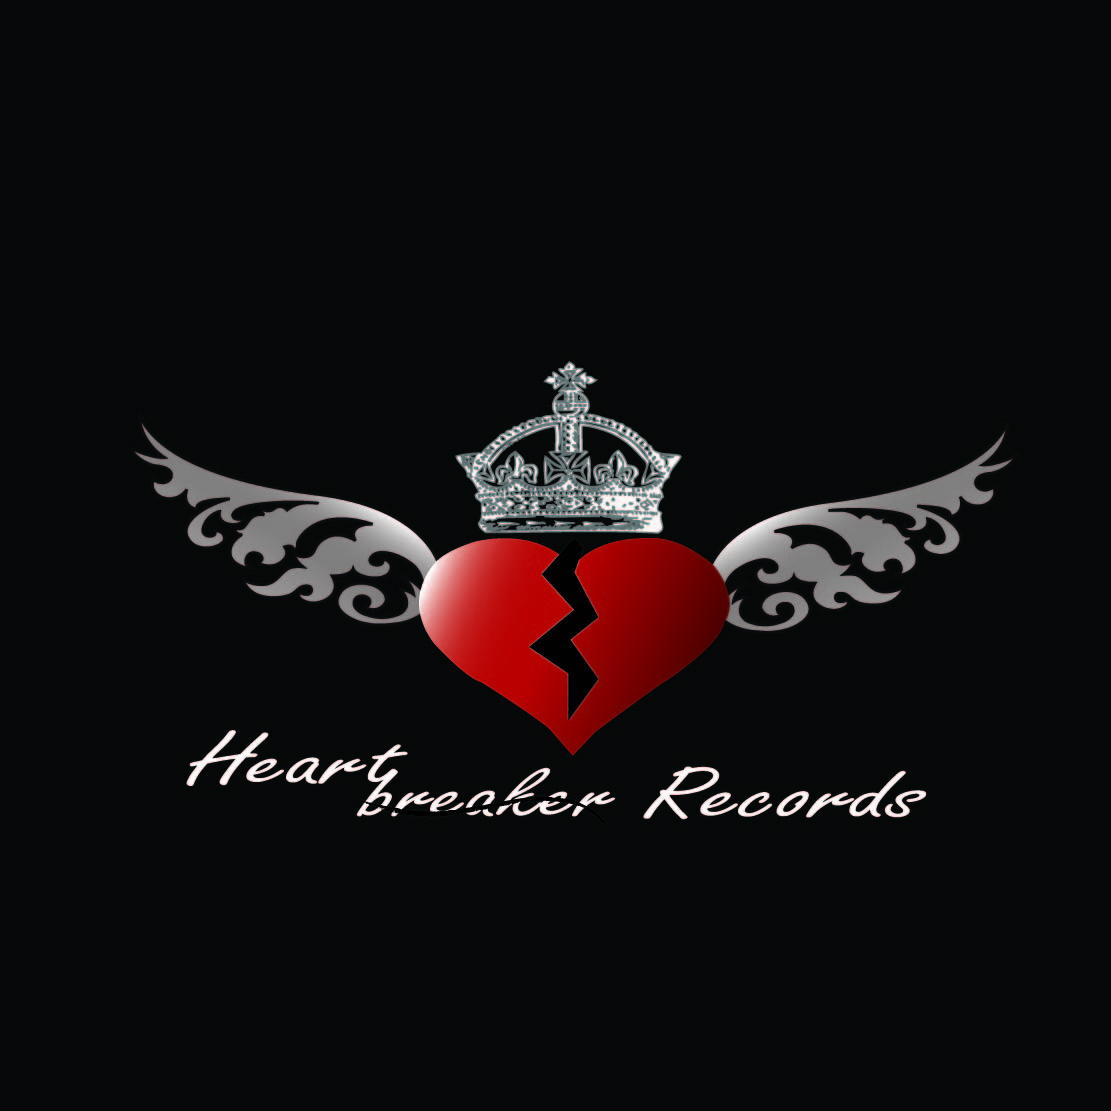 Logo Design by Saunter - Entry No. 30 in the Logo Design Contest Heartbreaker Records.